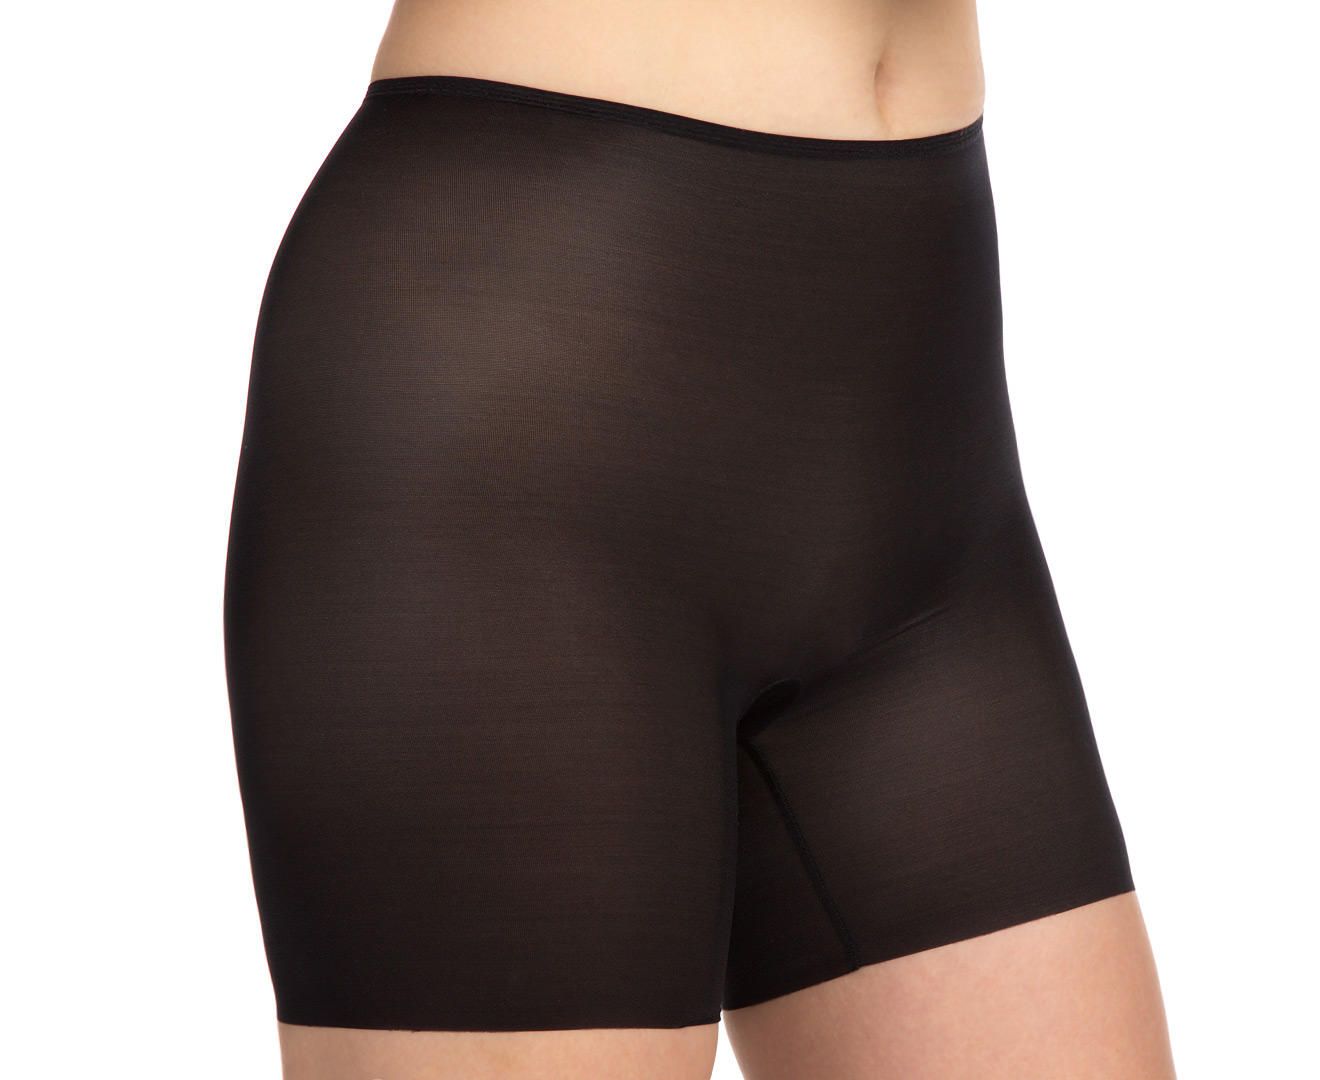 Aug 26,  · Her products, which have expanded to include women's shapewear, maternity wear, leggings, and even a Spanx line for men, sell at department stores worldwide and are available to purchase in